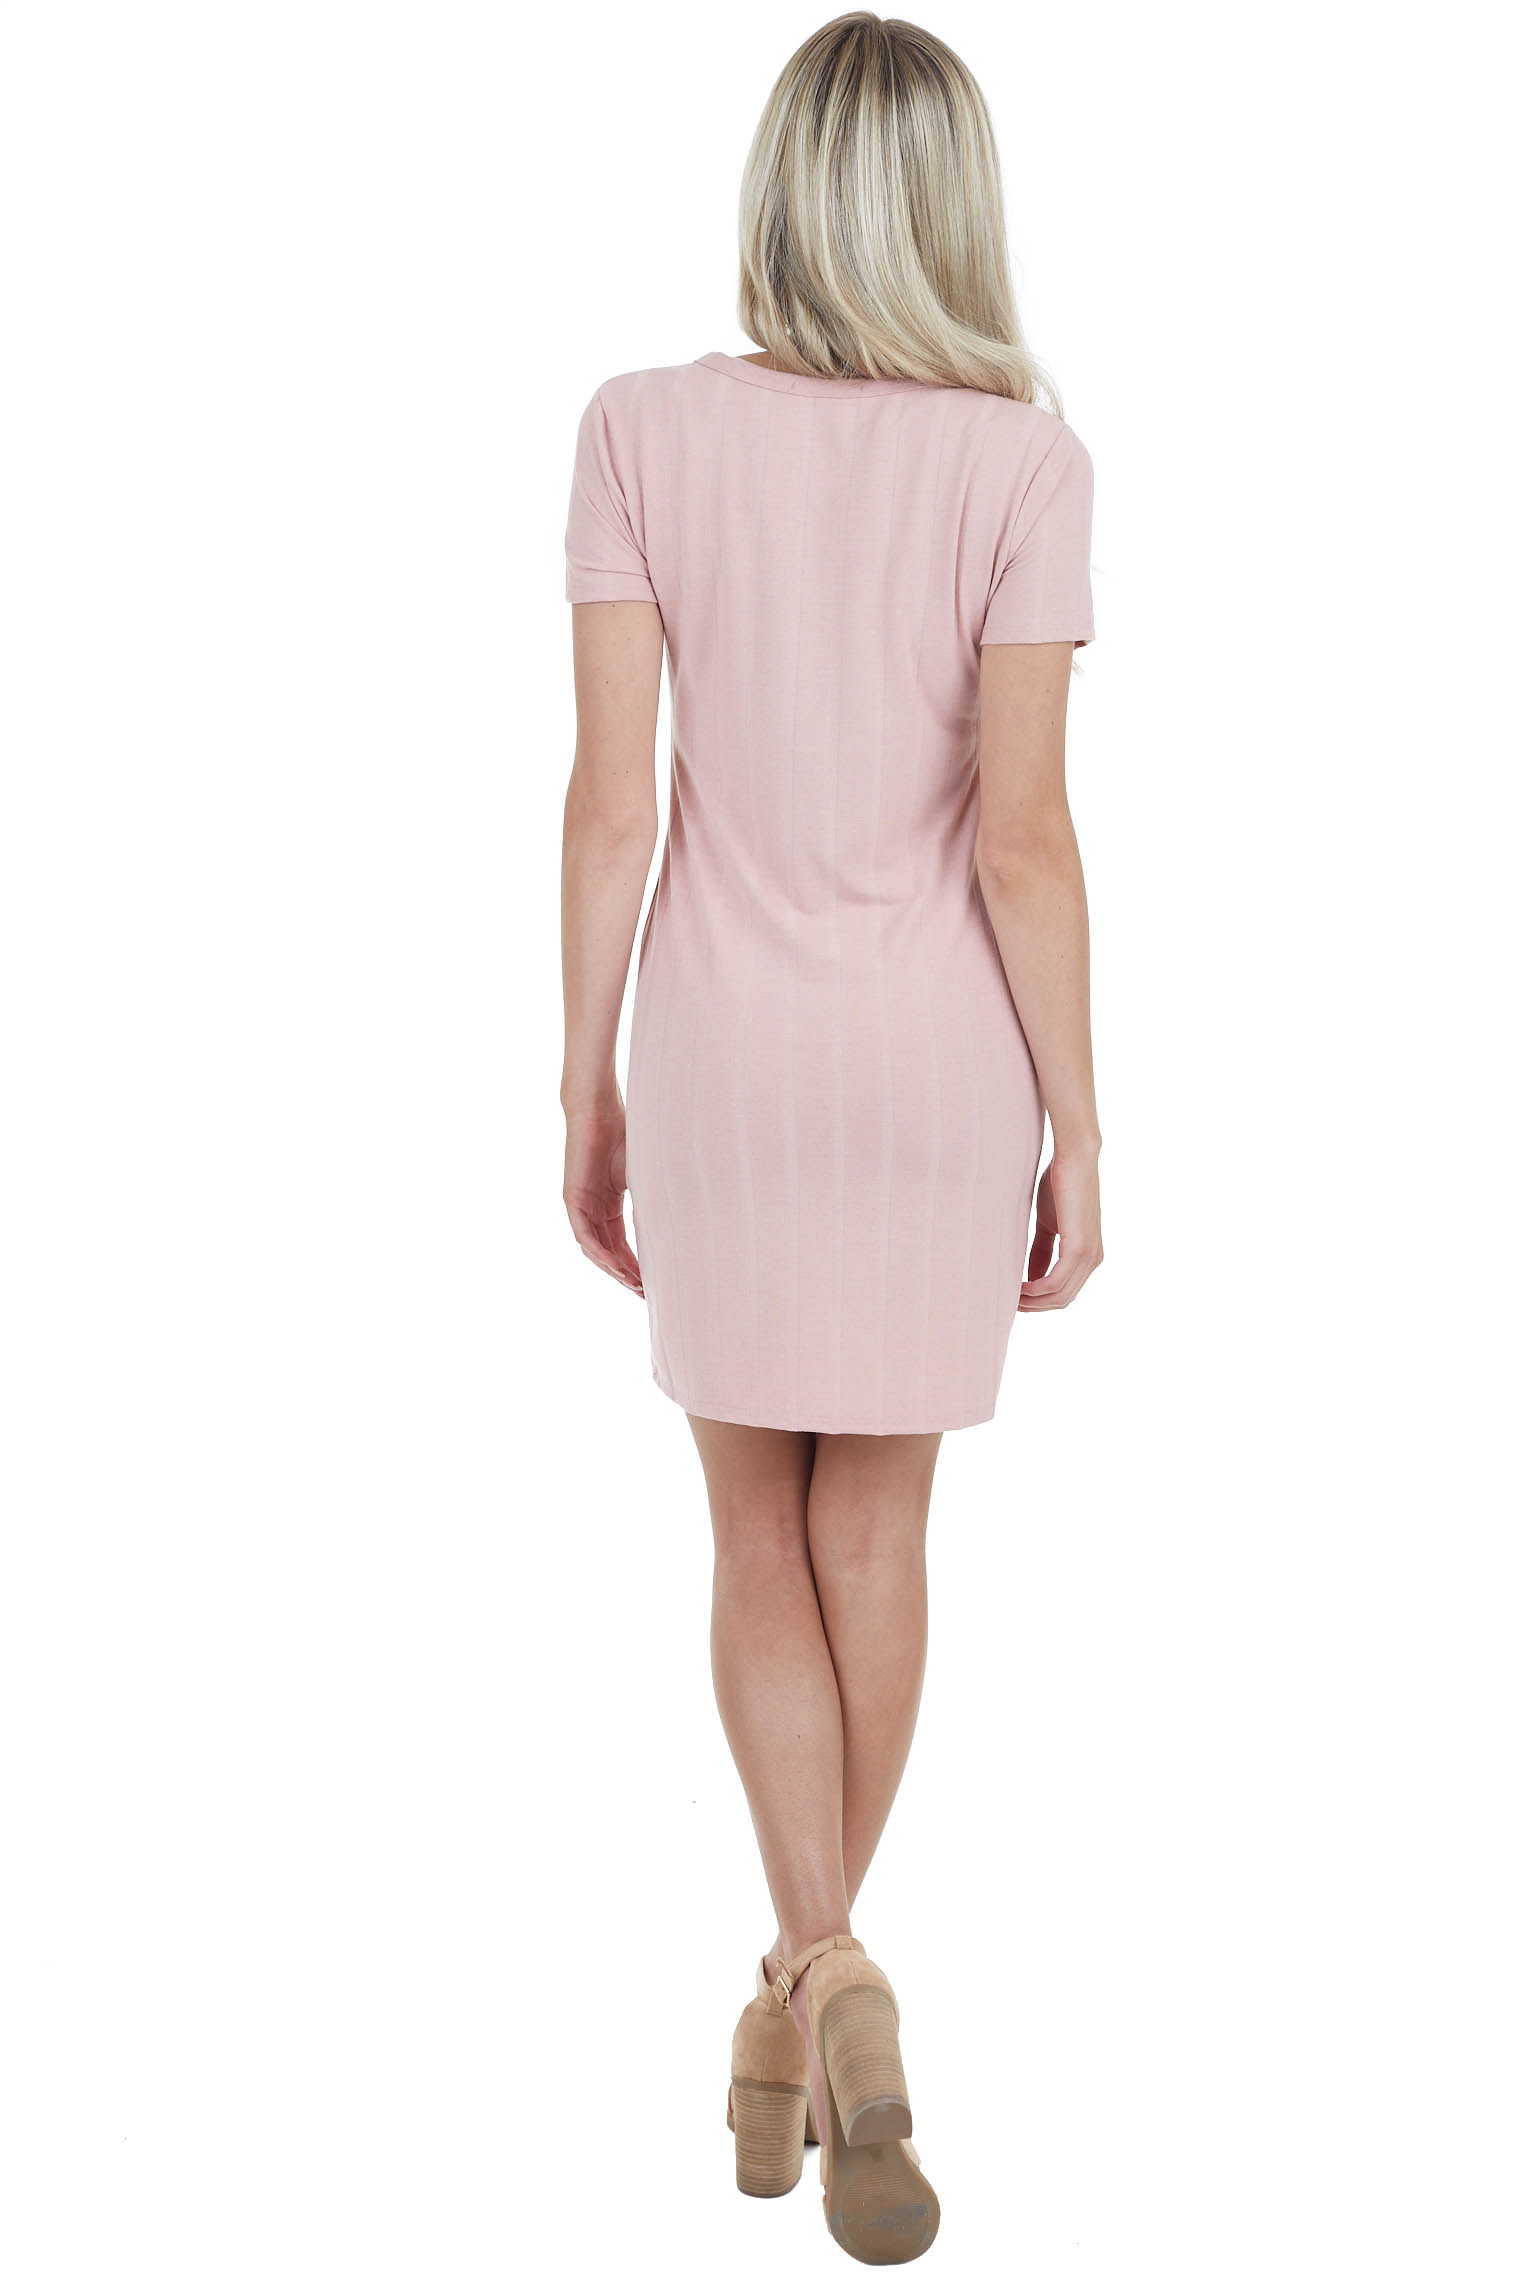 Dusty Rose Short Sleeve Mini Dress with Textured Stripes